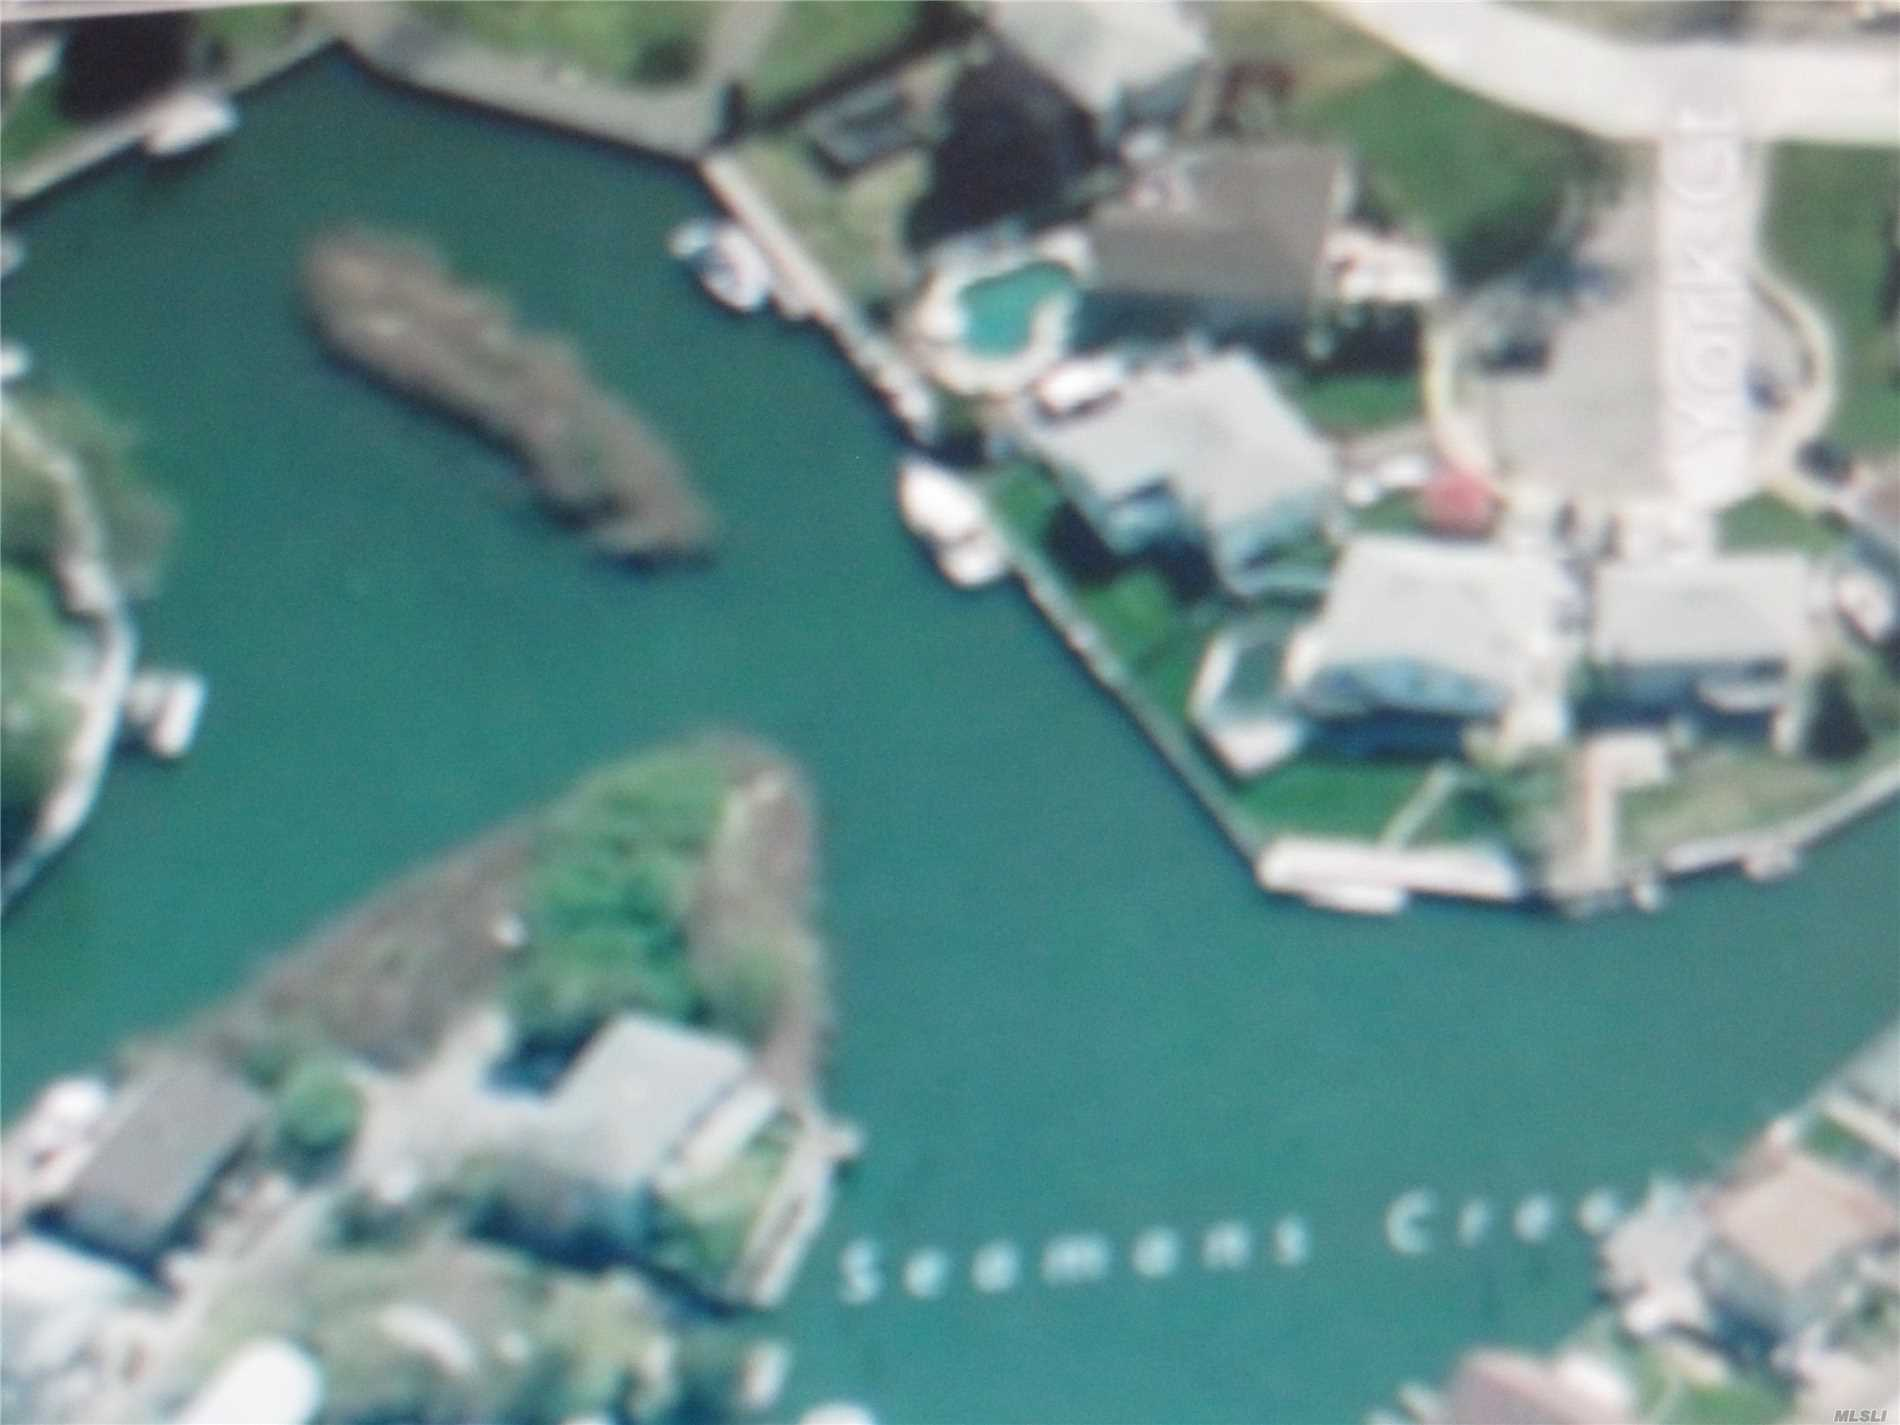 Are You A Builder! Are You A Boater ! Or Just Want To Live On The Water! This Is an Opportunity To Build A New Home On A Unique Cul De Sac Location!! 200 Ft Of Waterfront On 3 Sides Of Property!! Level Land w/Gas And Sewers On Street. Electric On Property. Bulkhead Not Required But A Retaining Wall Is. Included In Sale An Island Adjacent To Property- Take A Look !!